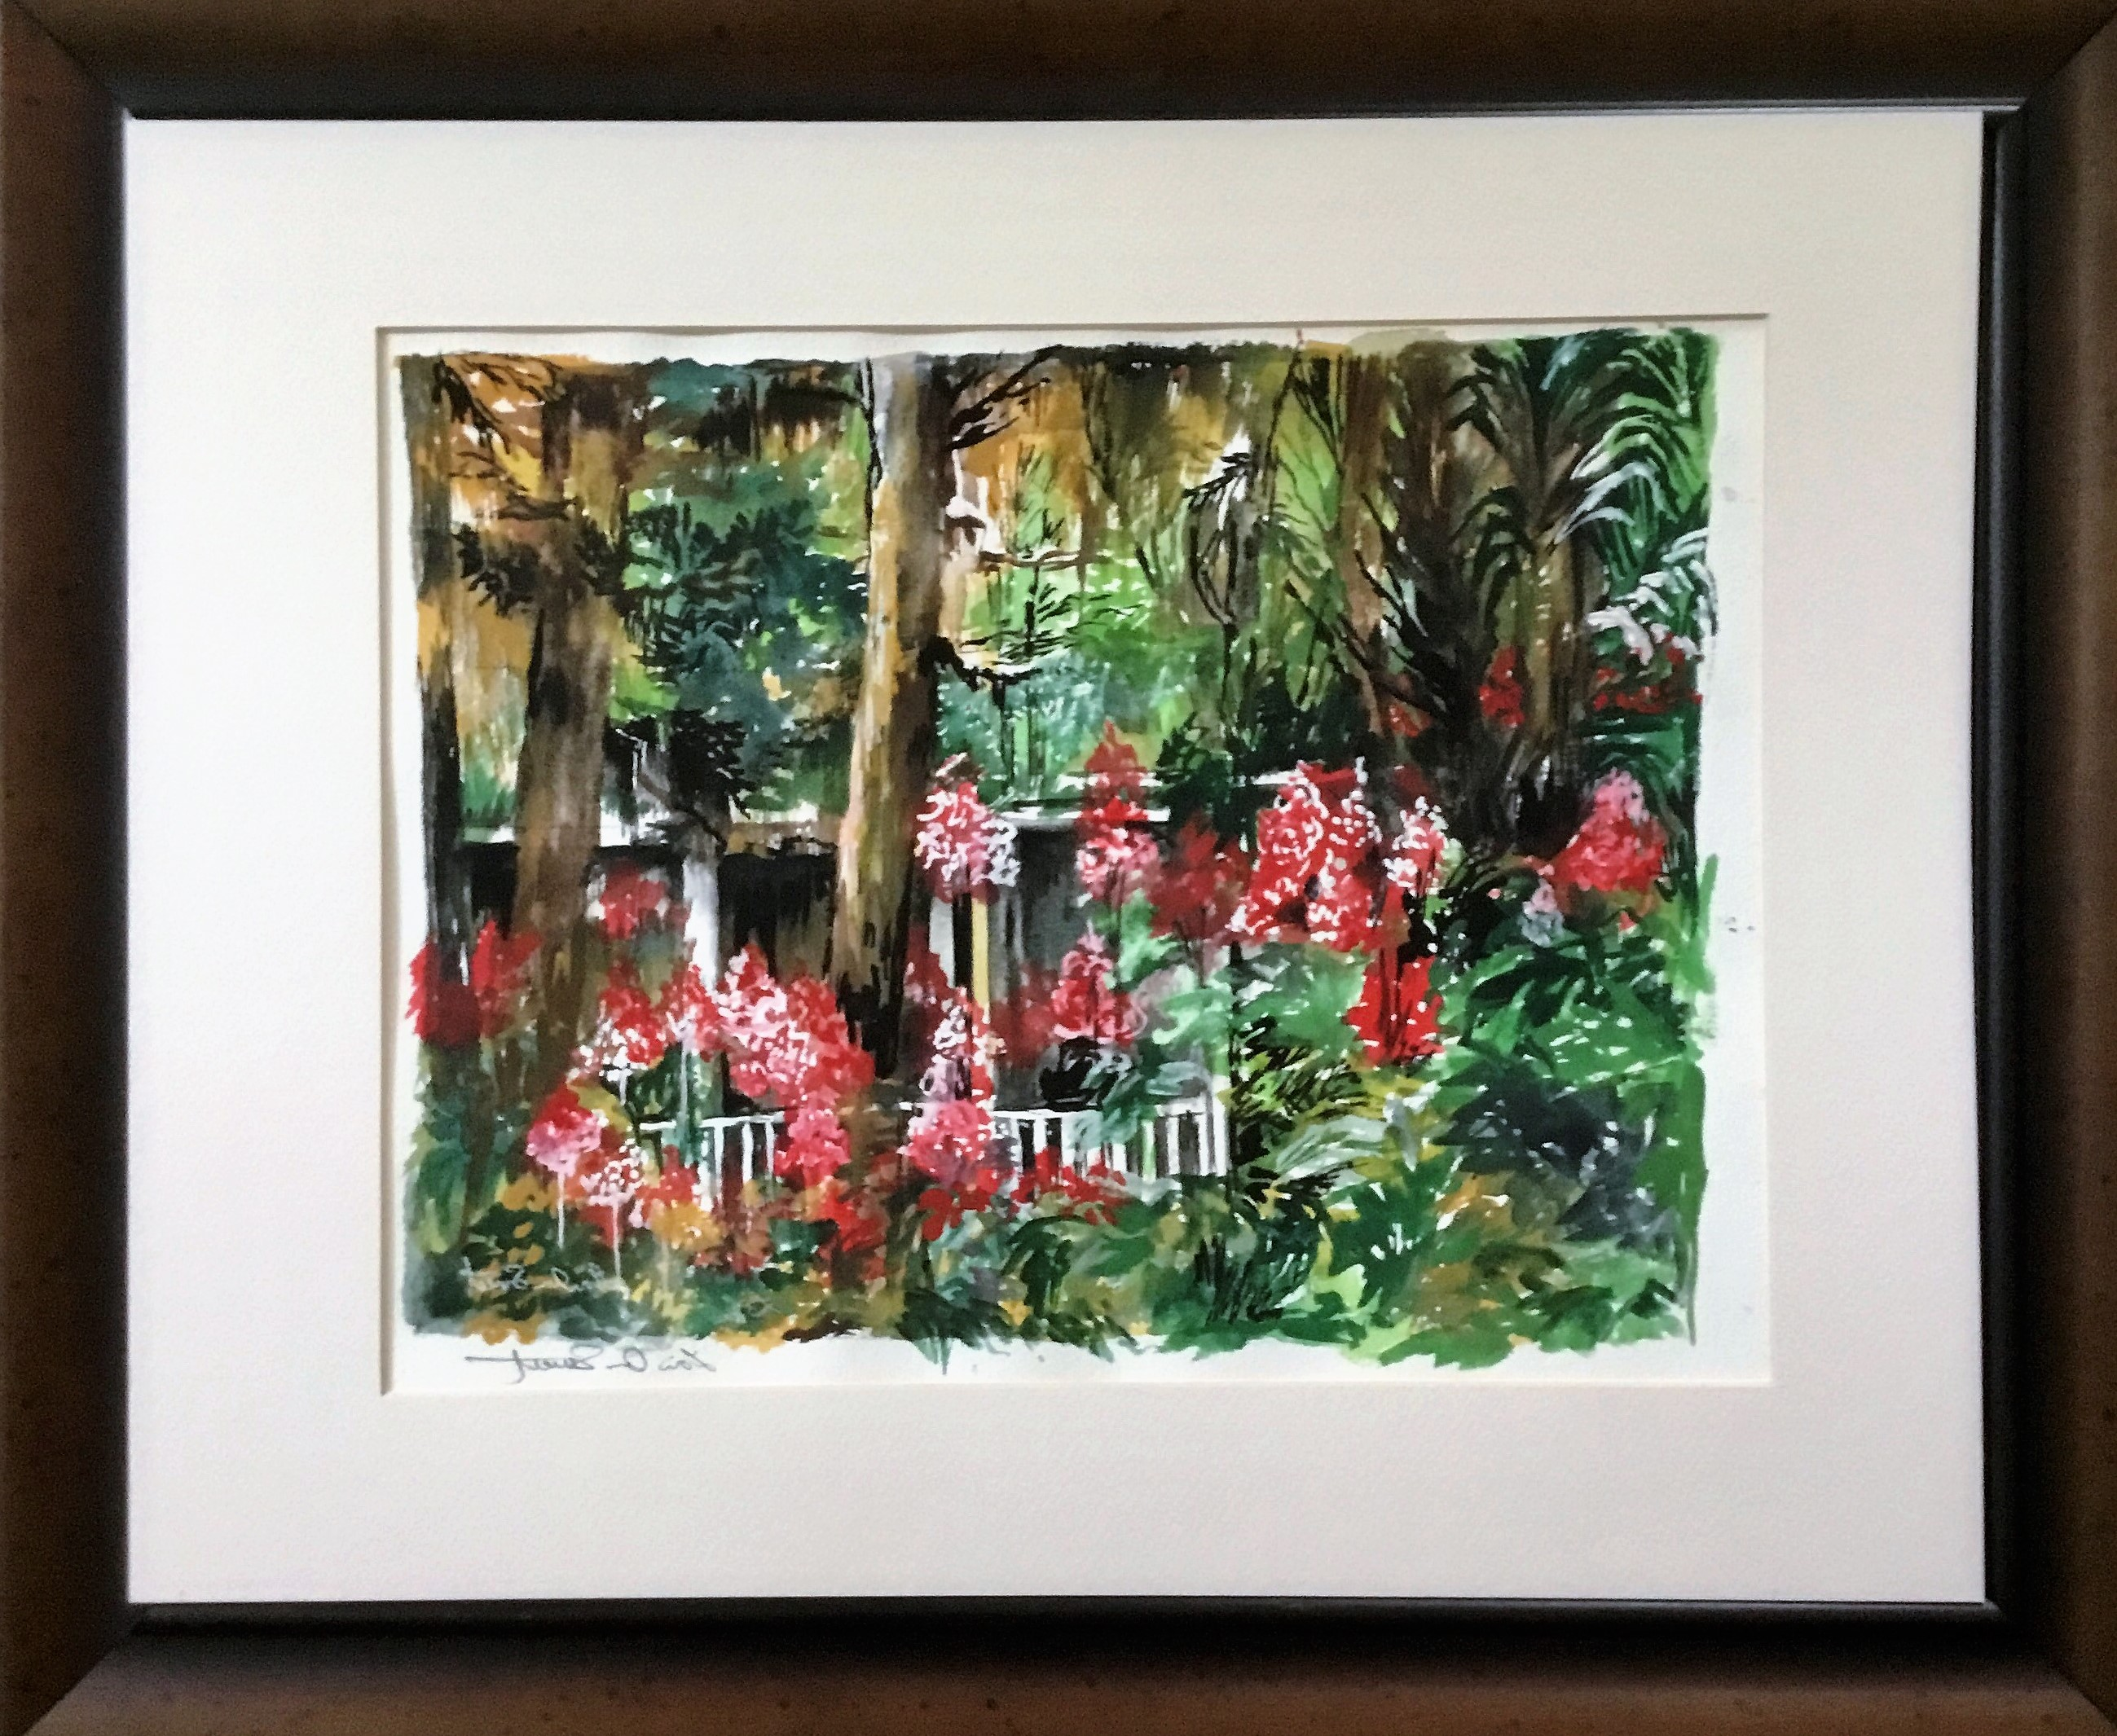 'Hidden Amongst the Gardens - Melrose, Florida', watercolor on paper by Lori Sweet ($195) ⎼ 'The one place I seem to find peace is in our gardens beds. Something therapeutic about gardening. I forget about life itself and can hide amongst the aloe and birds of paradises. Smething wonderful about seeing your gardens thrive into full bloom. Again I find peace and serenity in my gardens.'